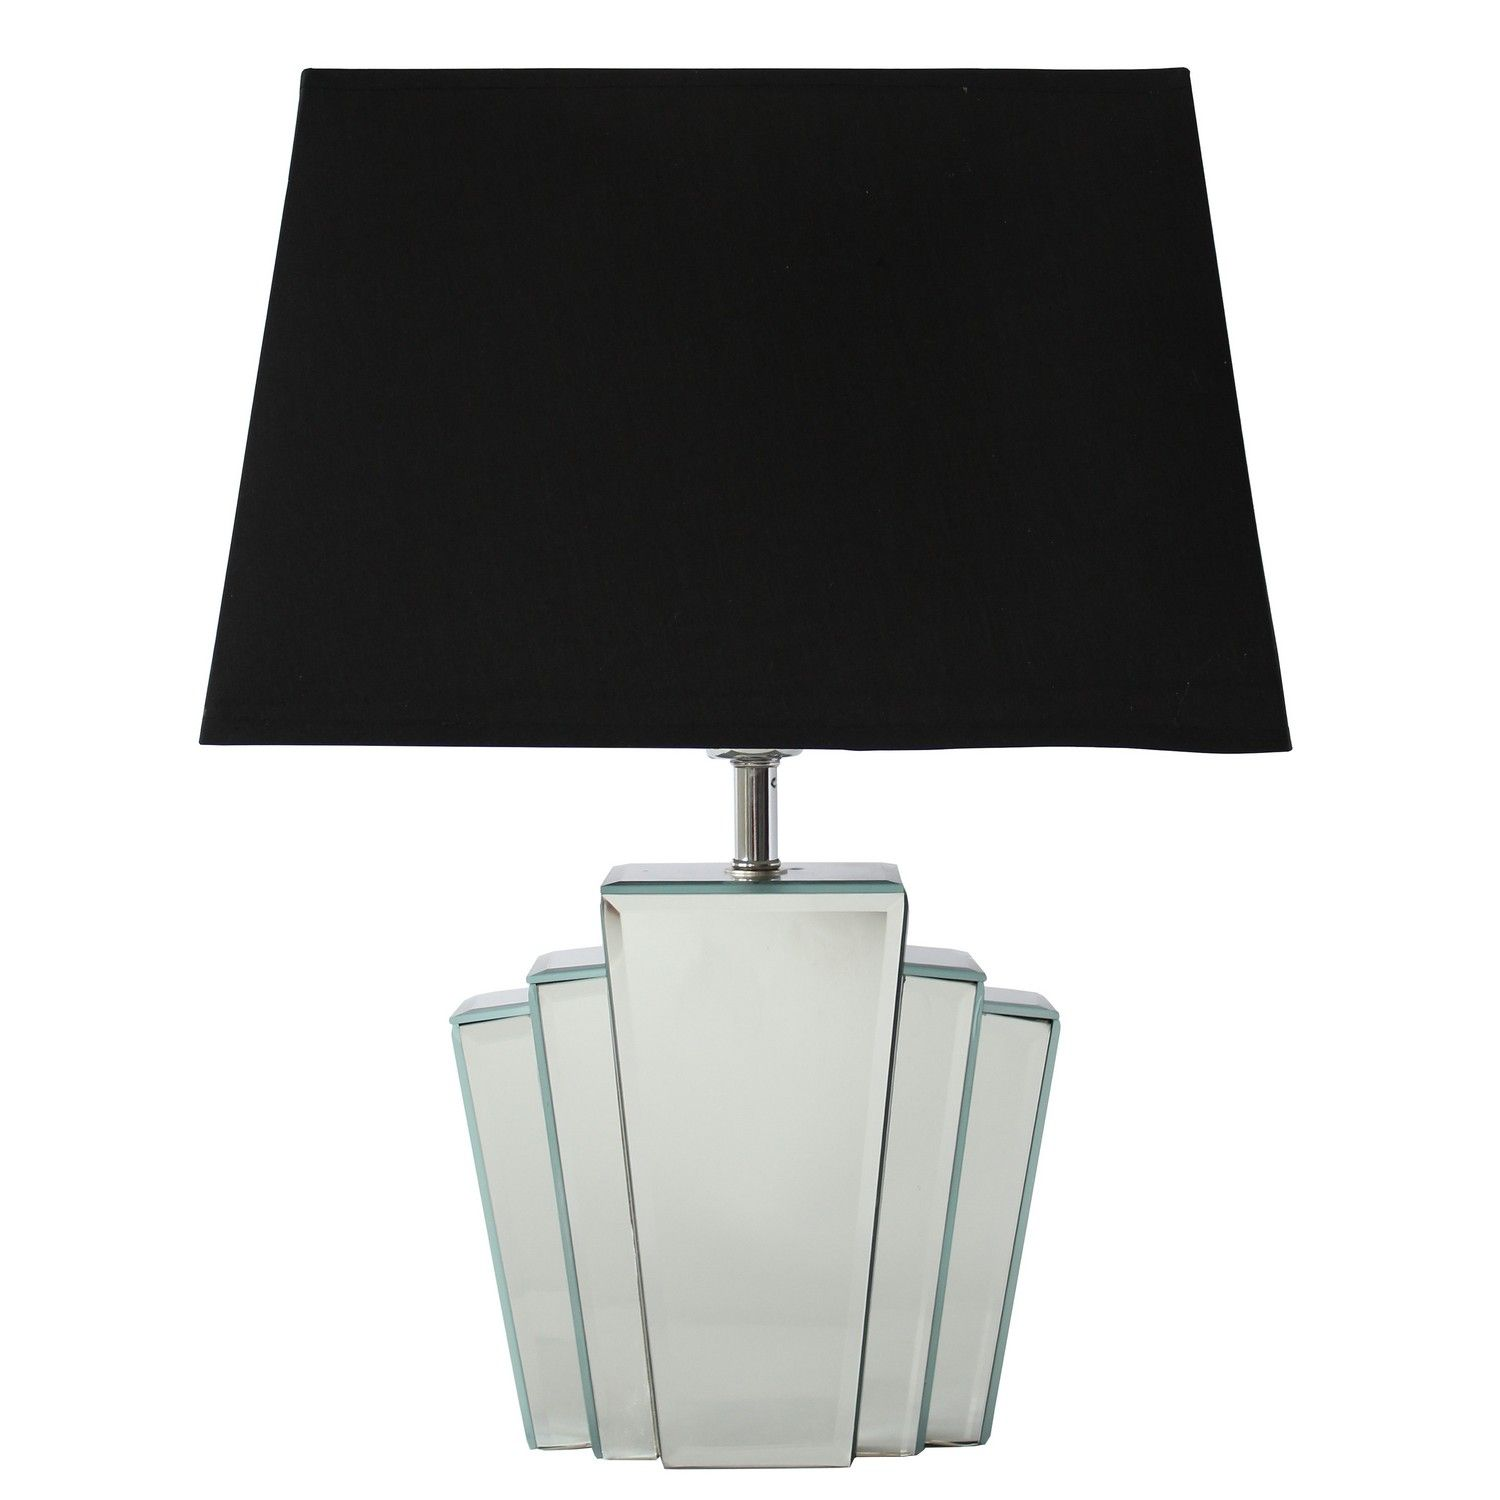 Buy fan mirror table lamp table lamps the range artdesigns buy fan mirror table lamp table lamps the range geotapseo Images